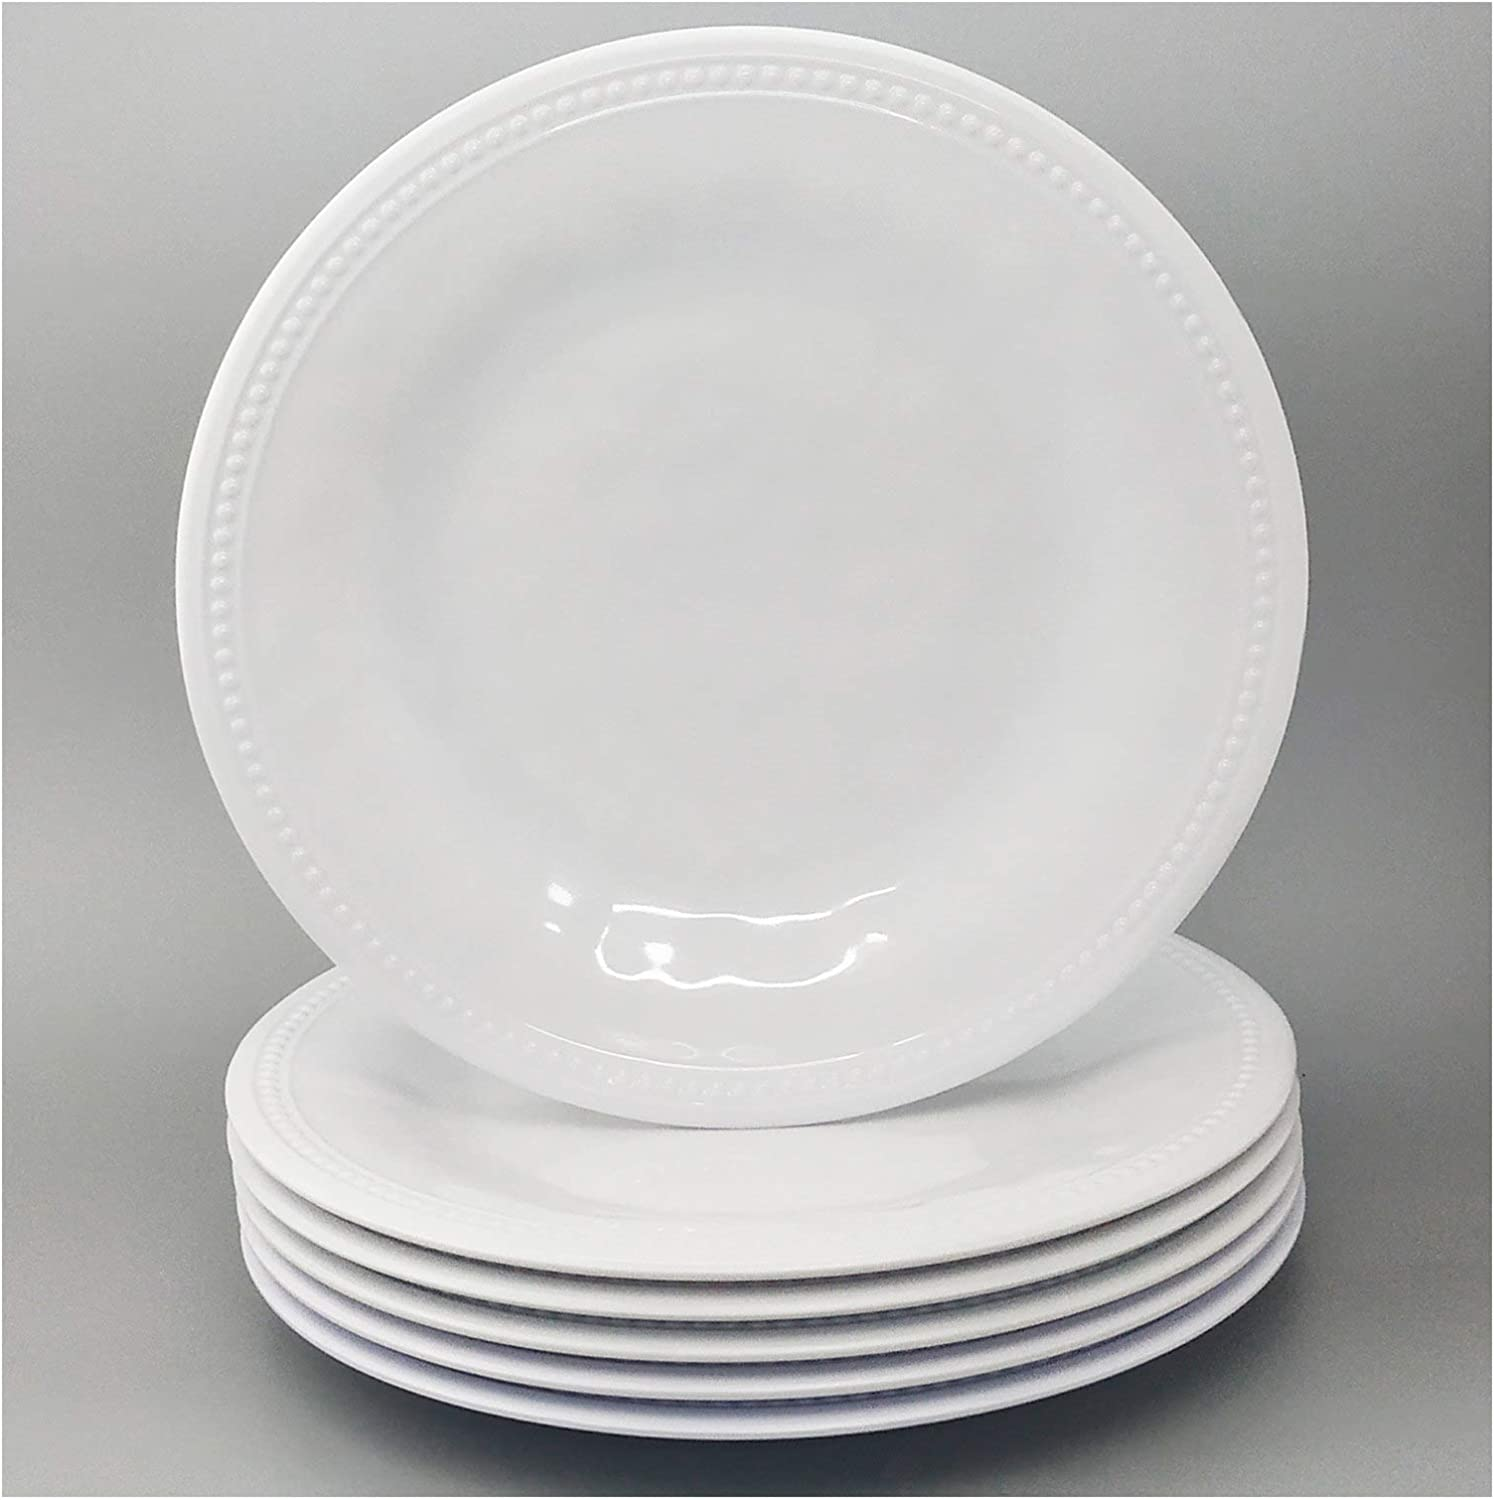 White Dinner Plate、High-quality 12-in 100/% Pure Melamine